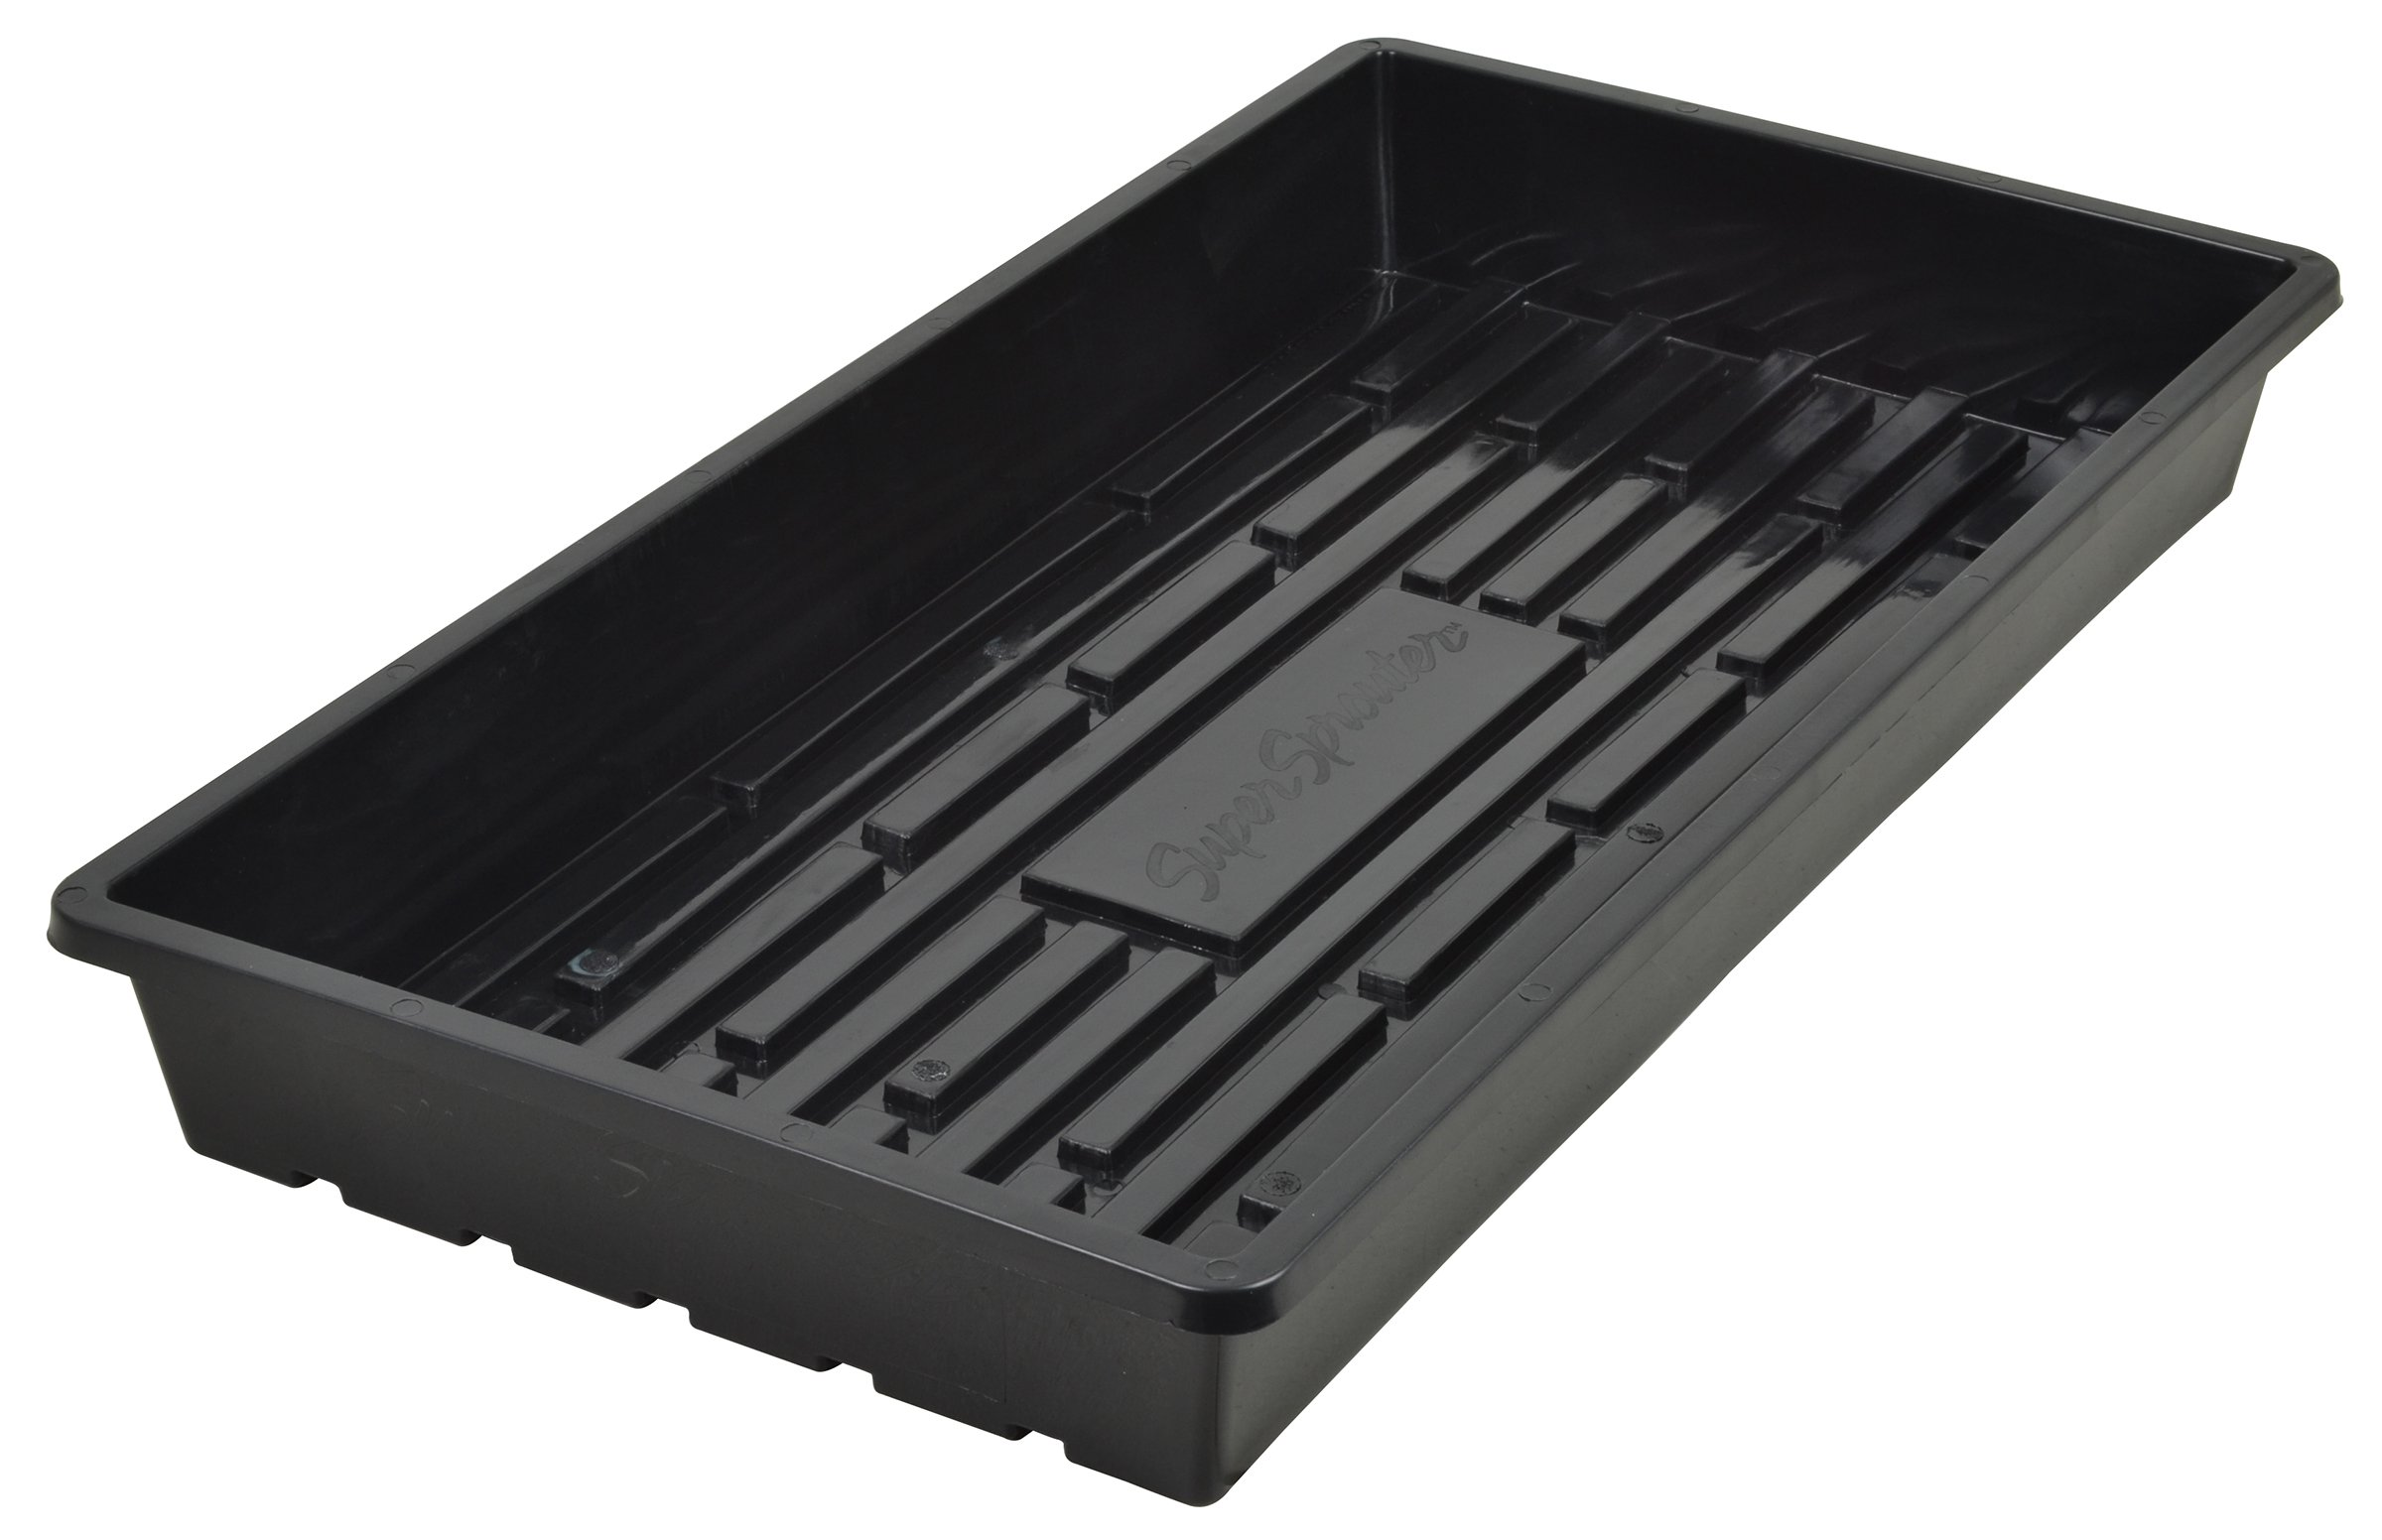 Super Sprouter Quad Thick 10 x 20 Tray - No Hole 5 PK by Super Sprouter (Image #1)